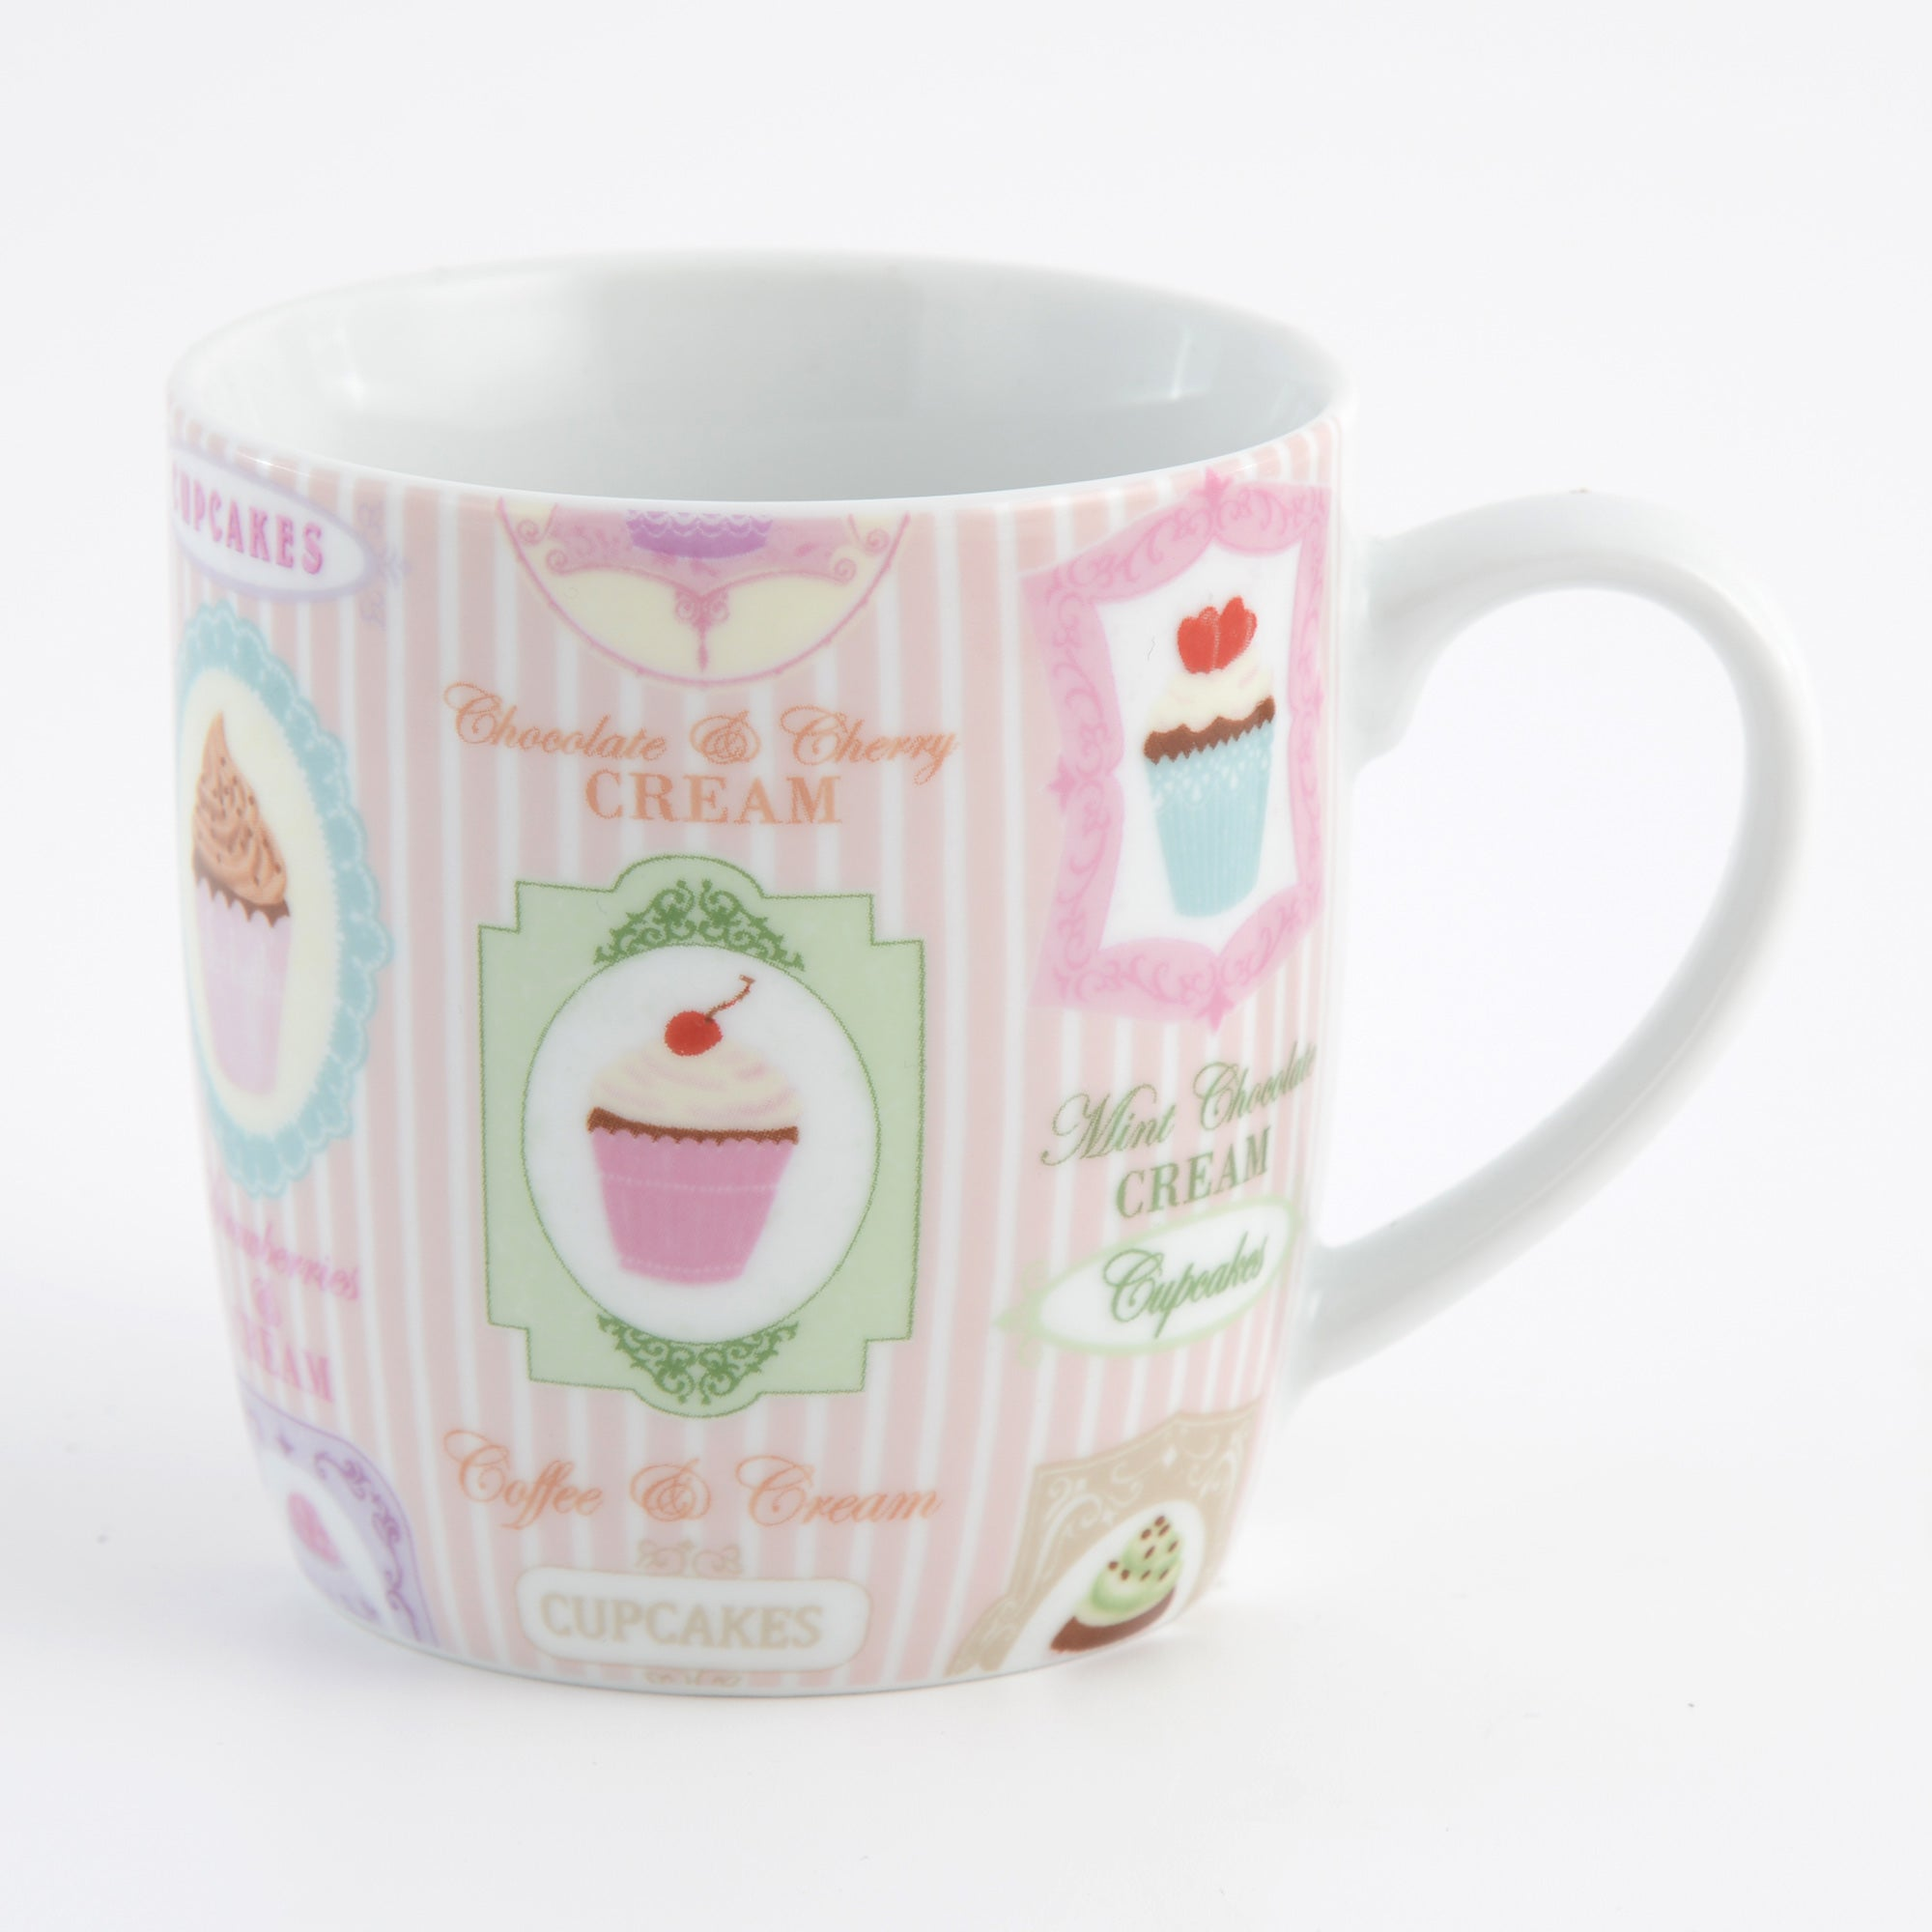 Tea Party Collection Mug